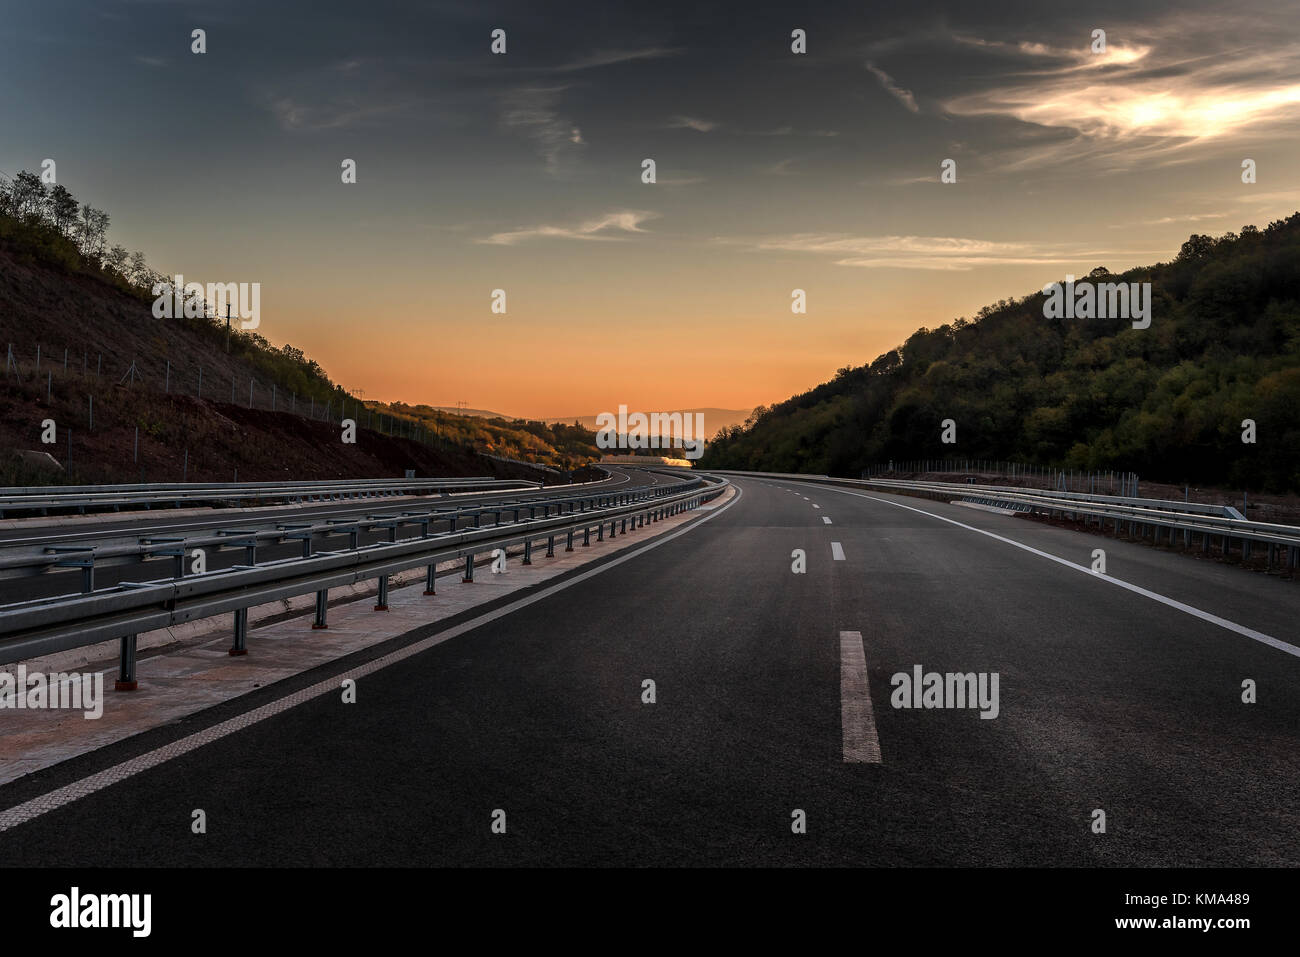 Empty Highway road with markings at sunset - Stock Image